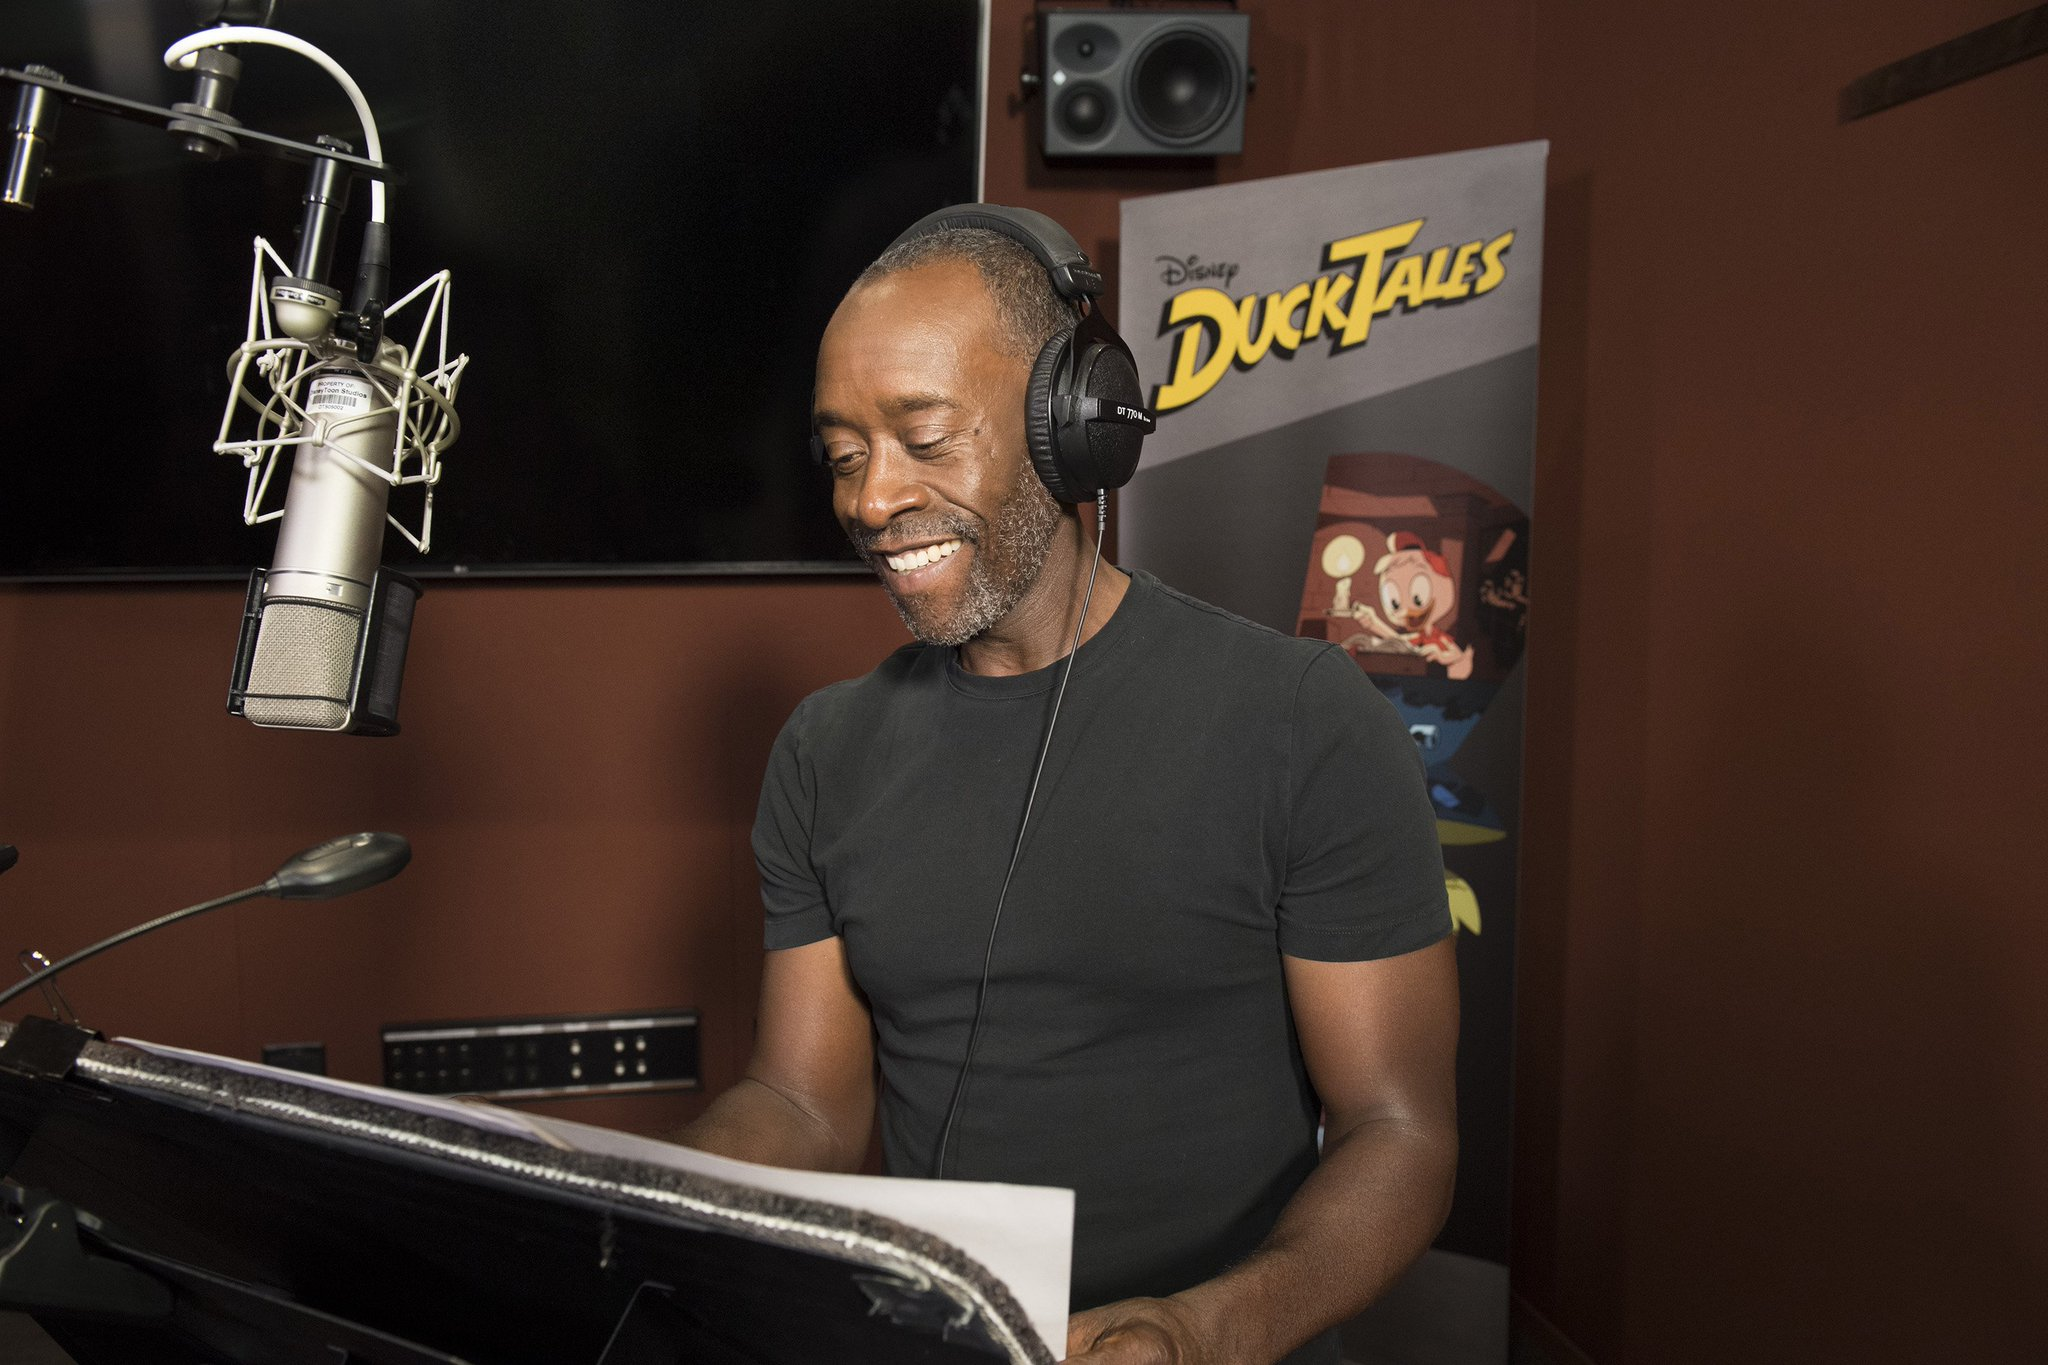 This video of Don Cheadle voicing Donald Duck will both delight and confuse you https://t.co/yPHDY6zWOr https://t.co/gQjoMBpnrG